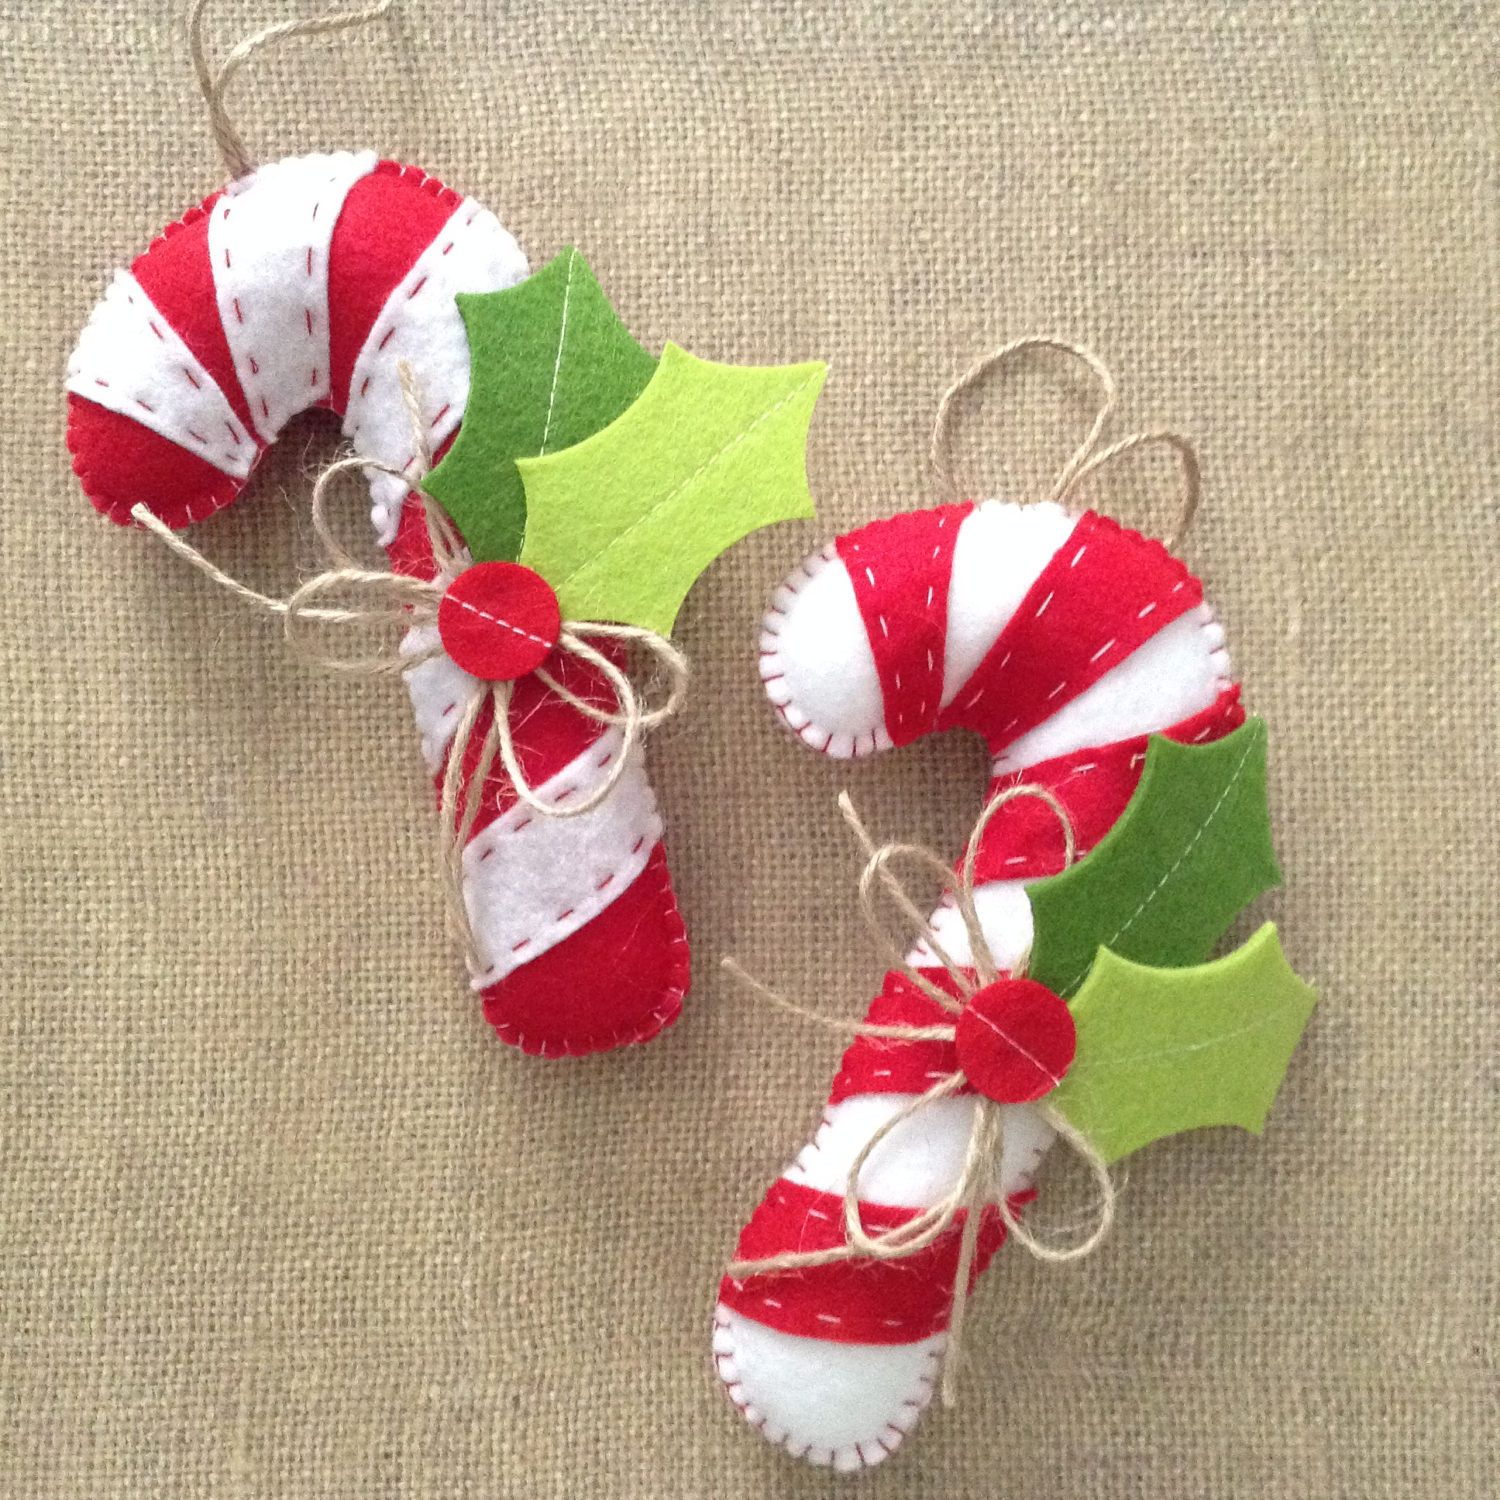 Candy Cane Ornaments Christmas Tree Ornaments Peppermint Candy Cane Felt